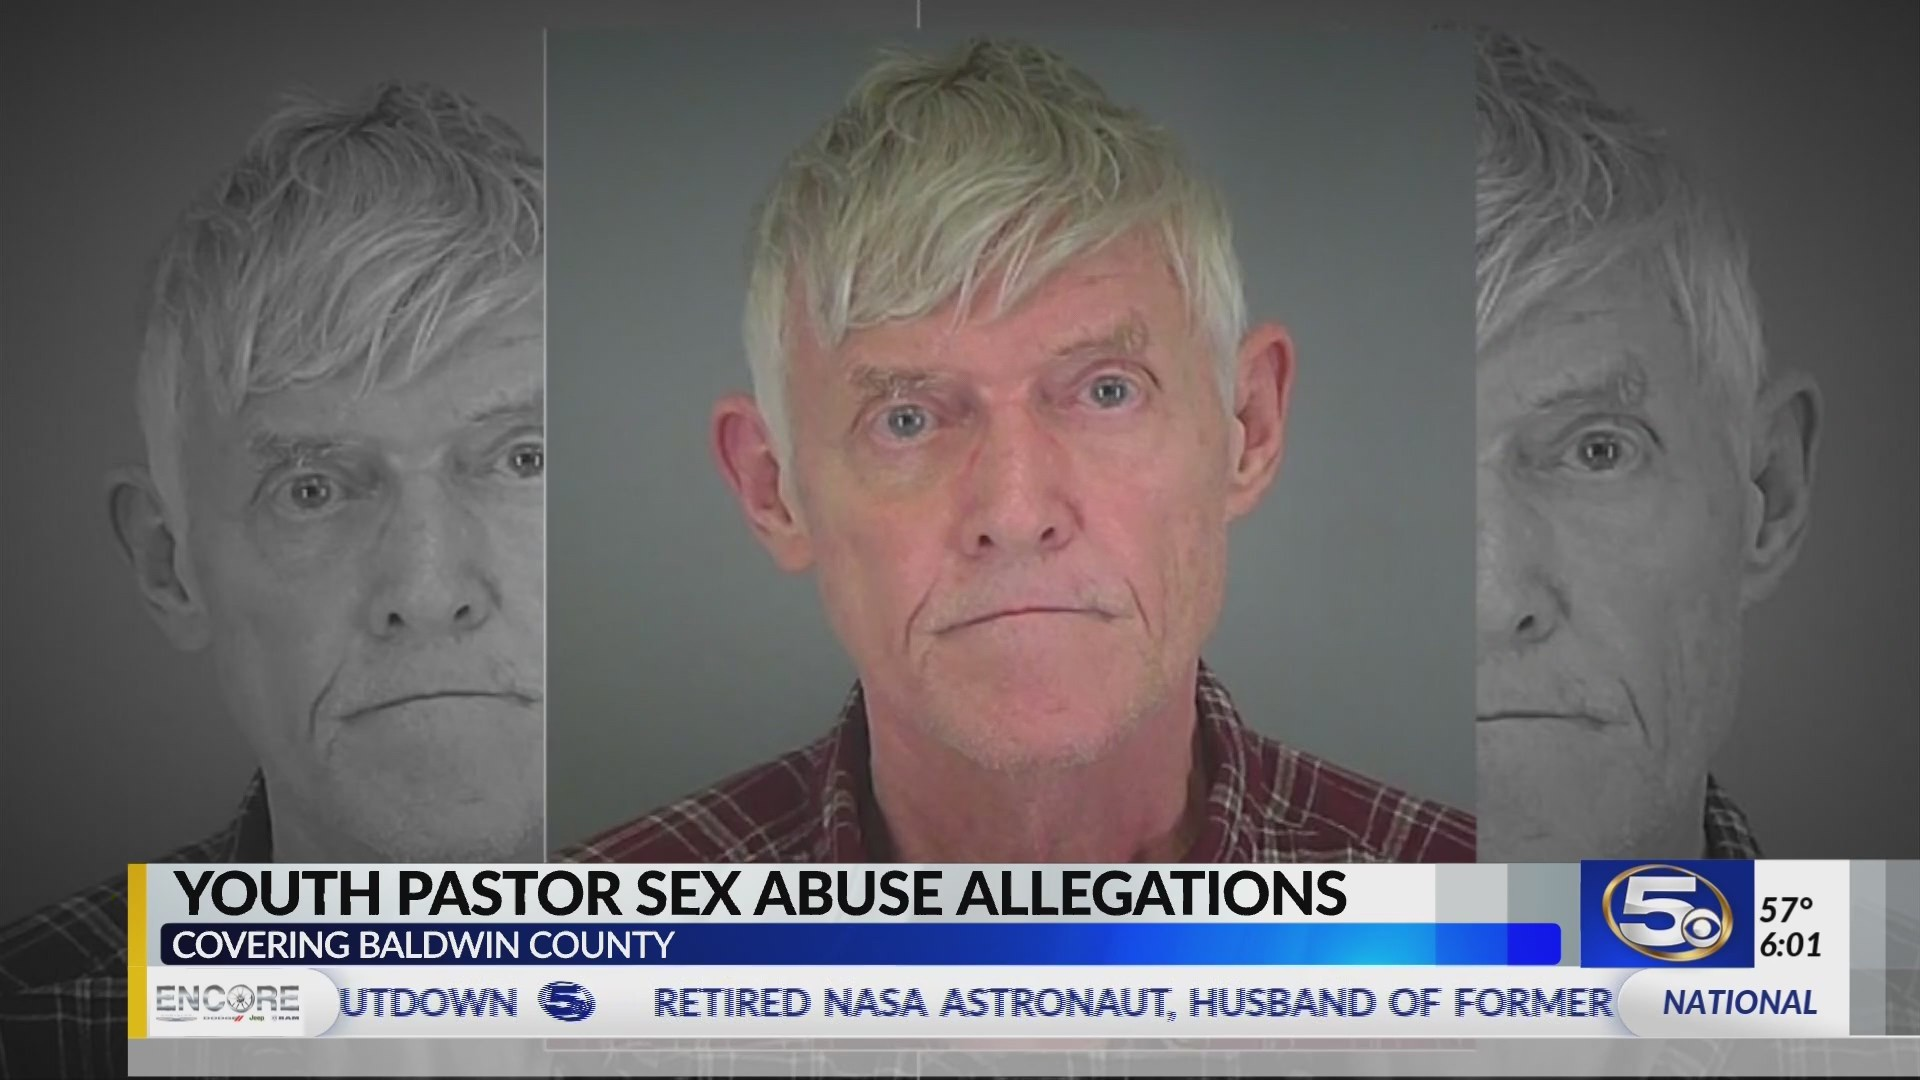 VIDEO: Child sex abuse victim fears there are more victims in Baldwin County